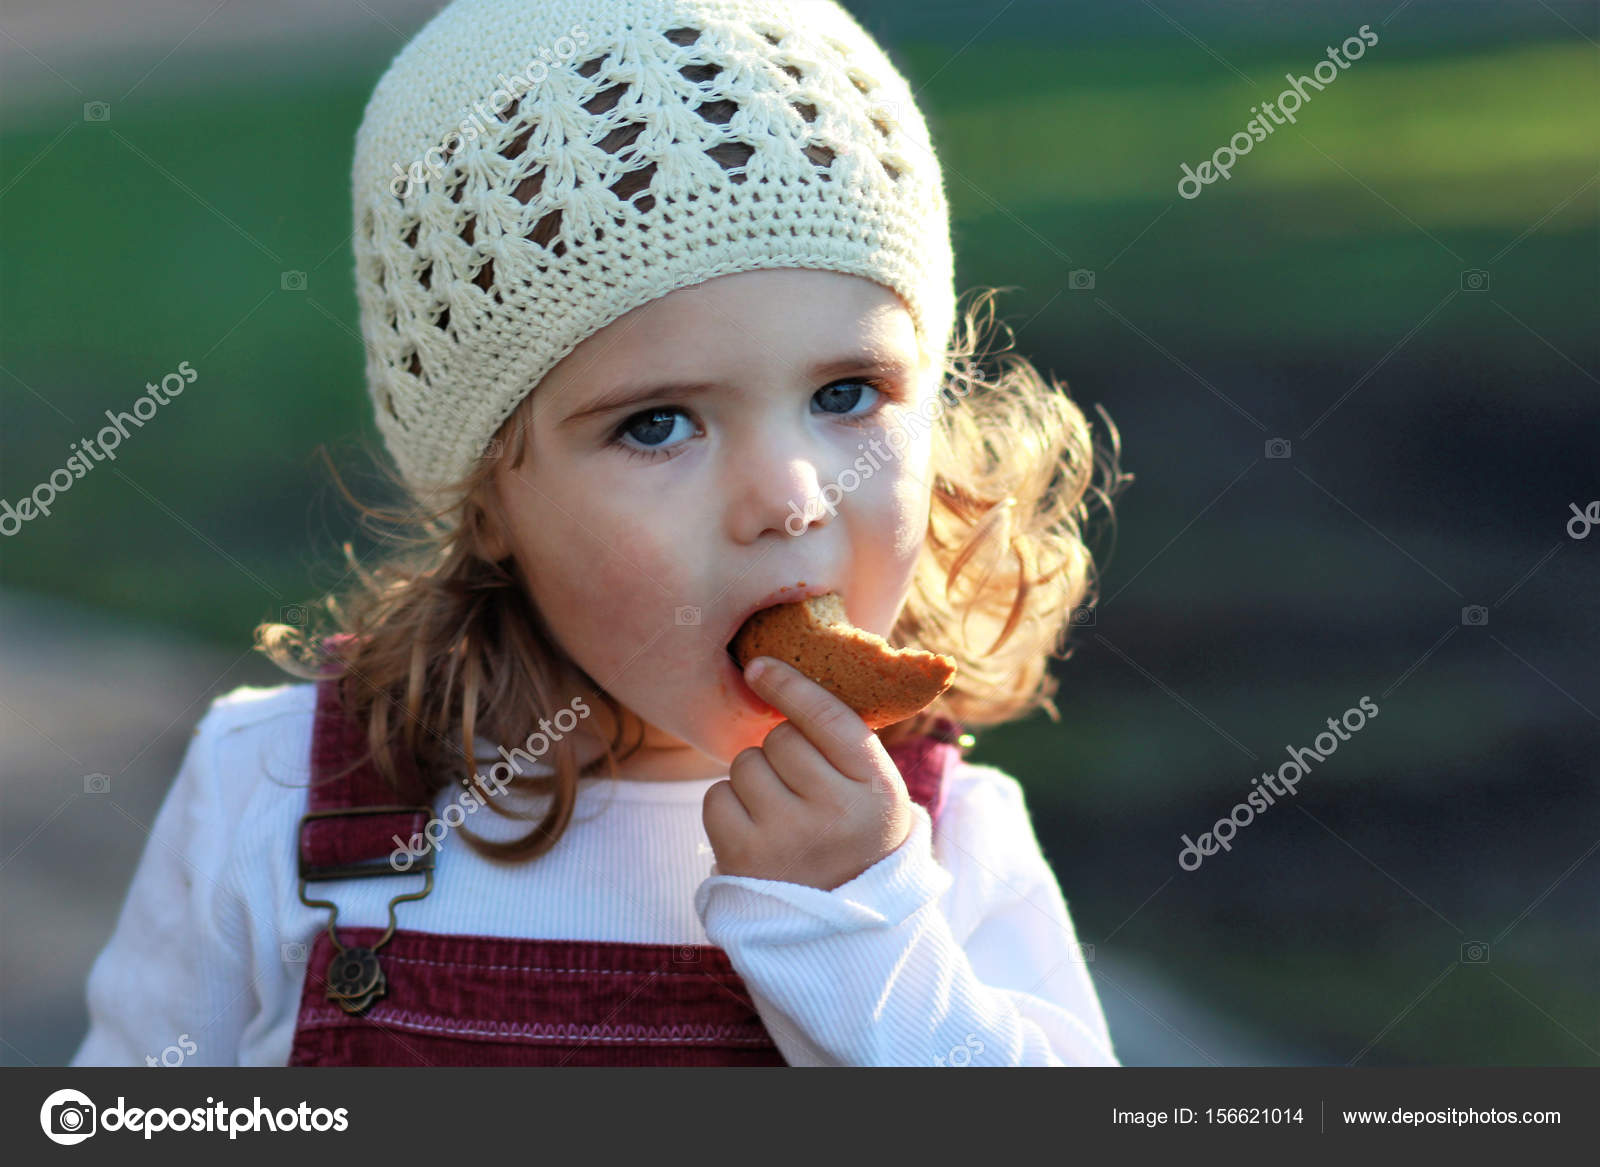 9cb62ef12e5 Close up portrait of cute one year old girl in a white knitted hat eating  cookie on a stroll in the park